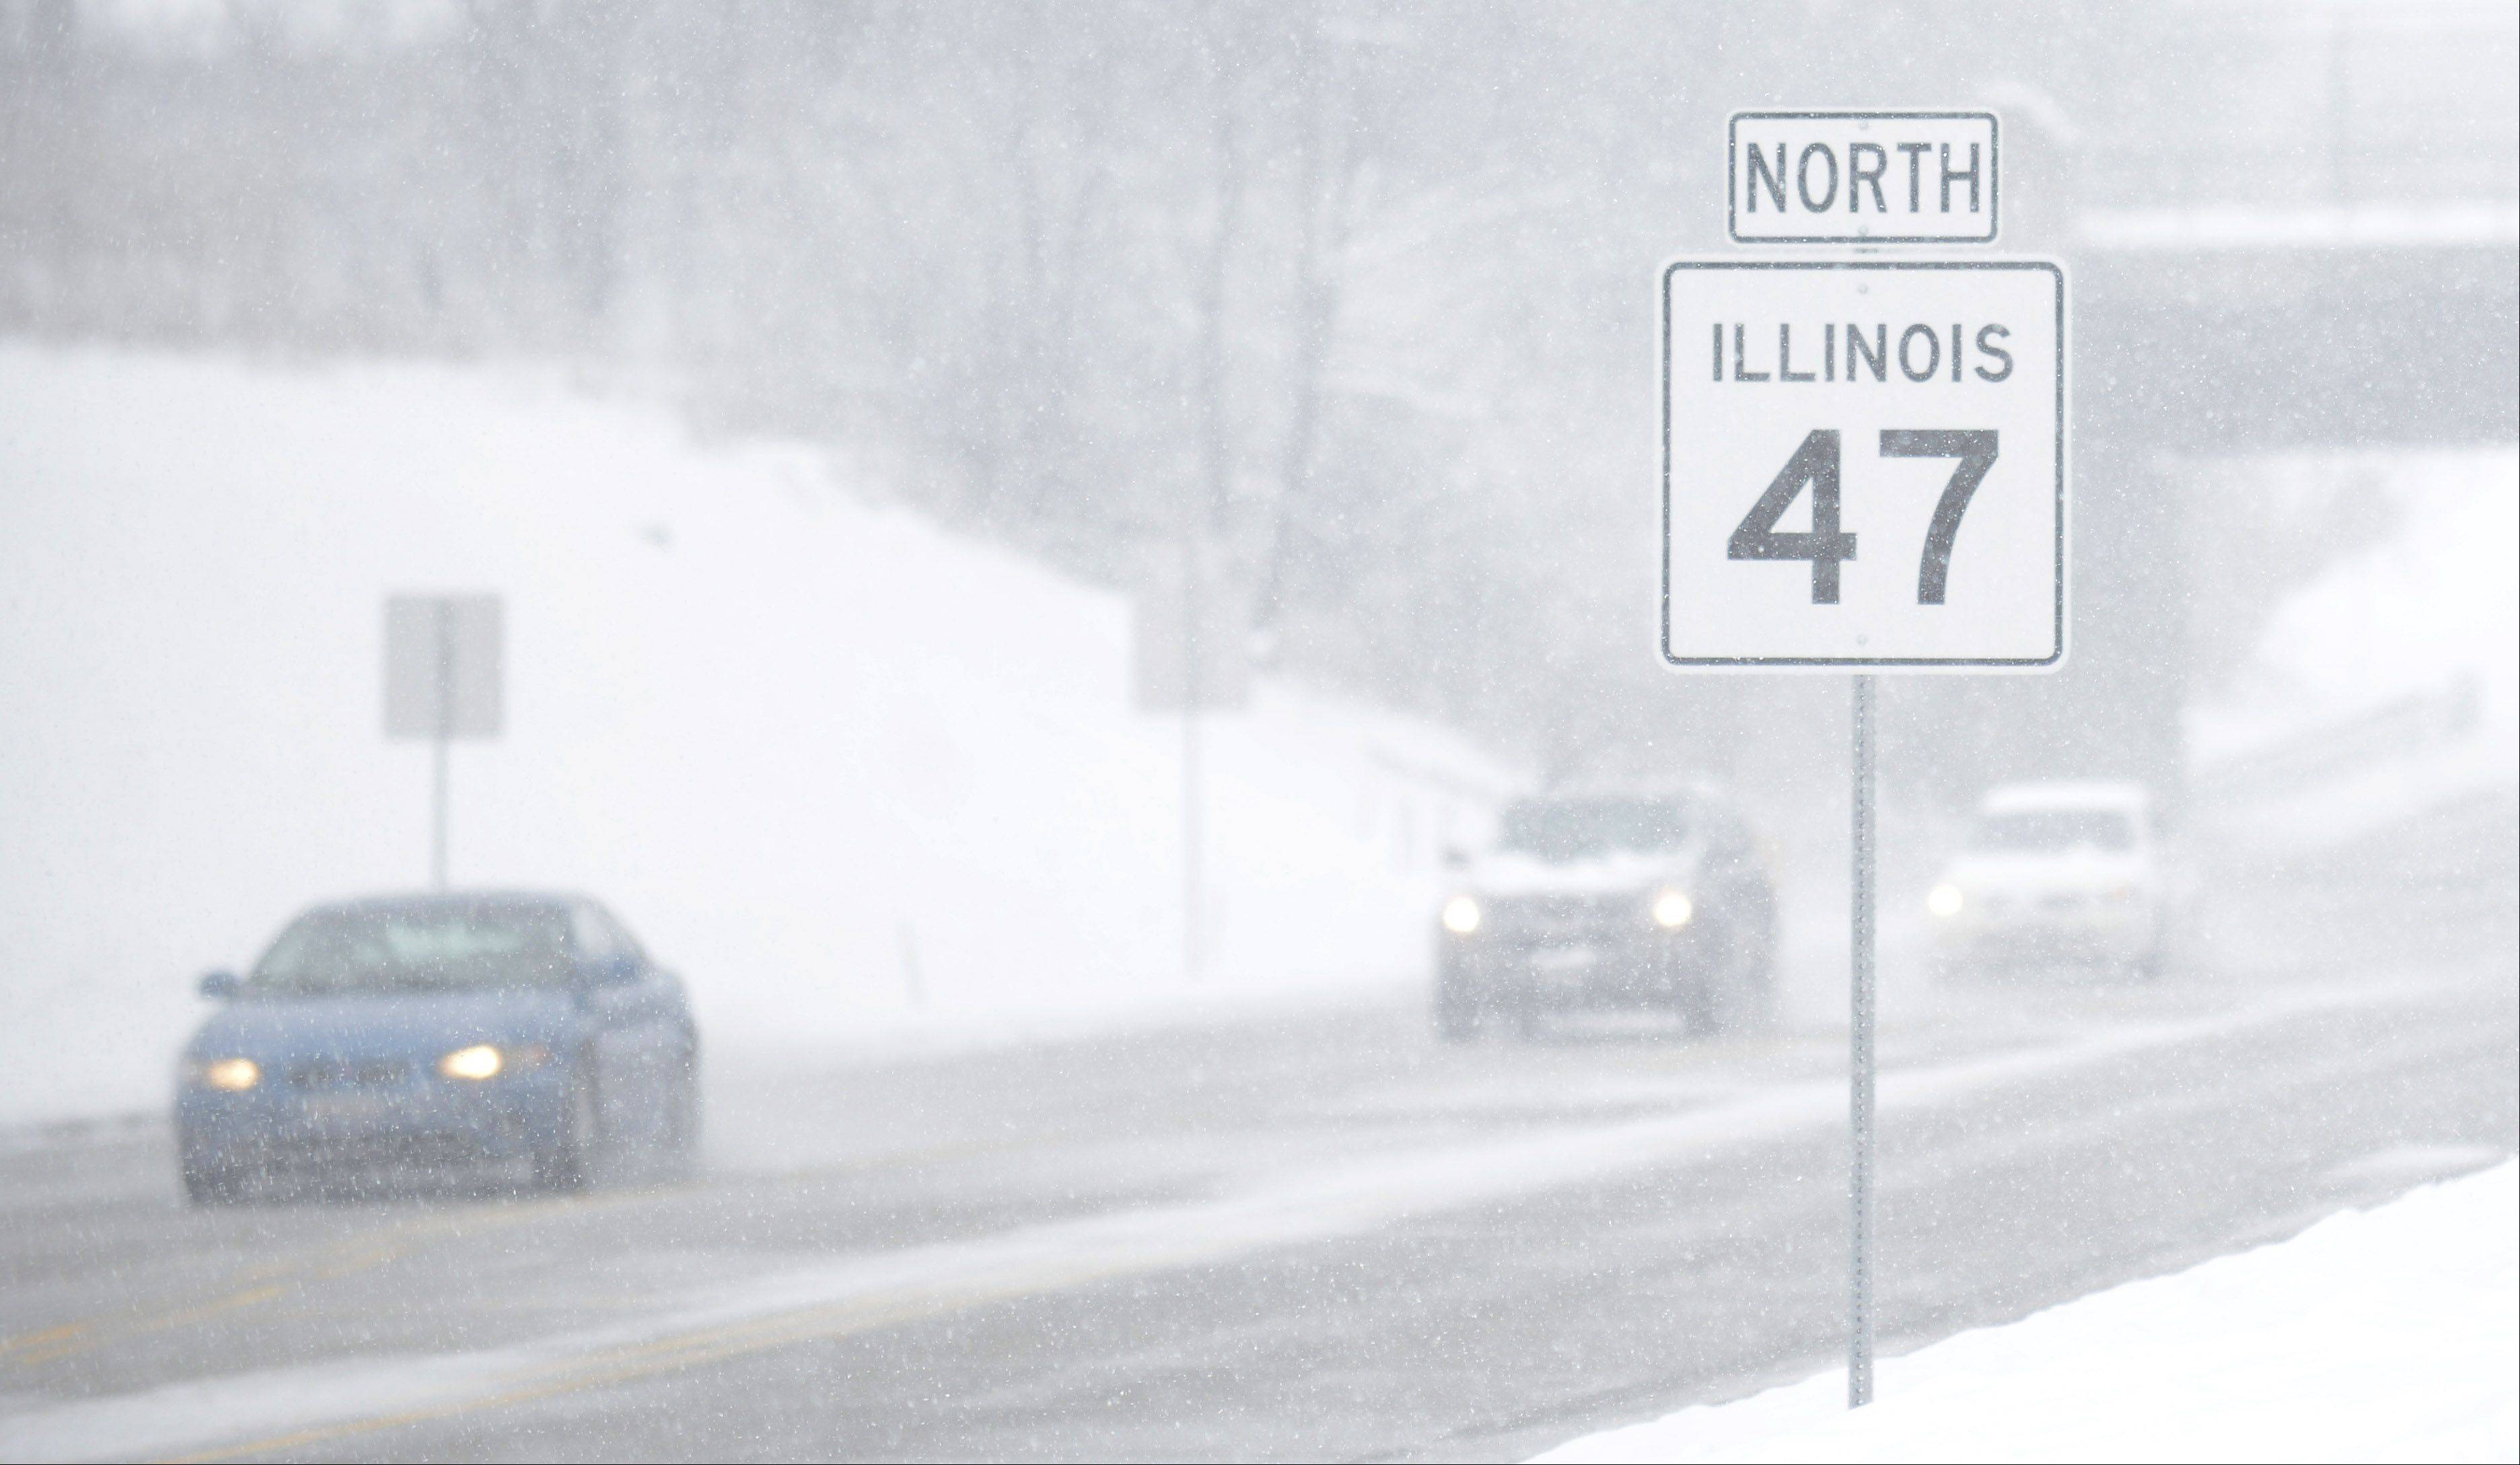 Visibility along Route 47 in Lily Lake is very limited as wet snow continues to fall early in the afternoon Tuesday. Cars without headlights on seemed to almost disappear among the snowflakes.